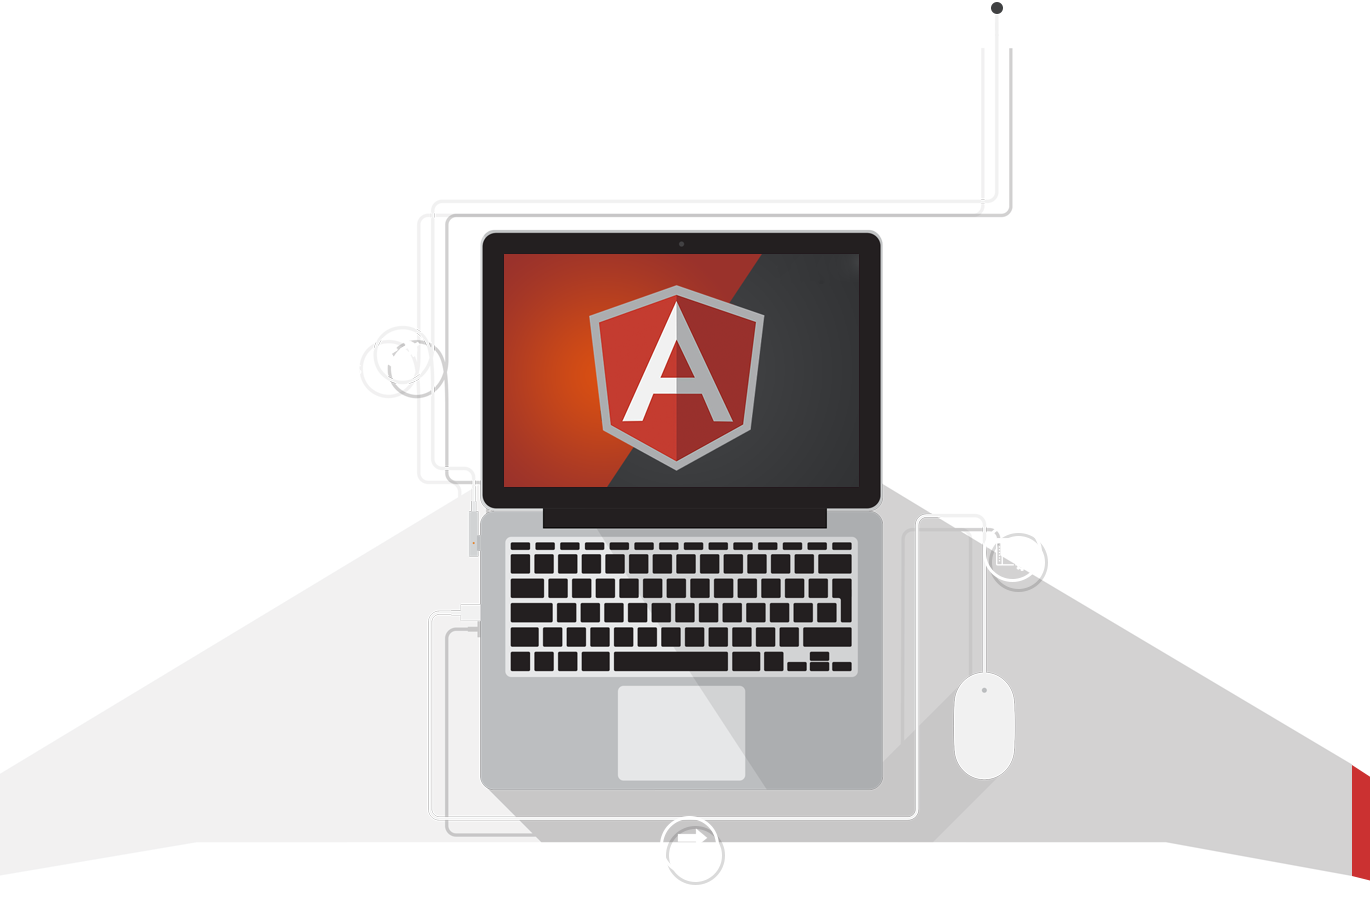 AngularJS Mobile Application Development